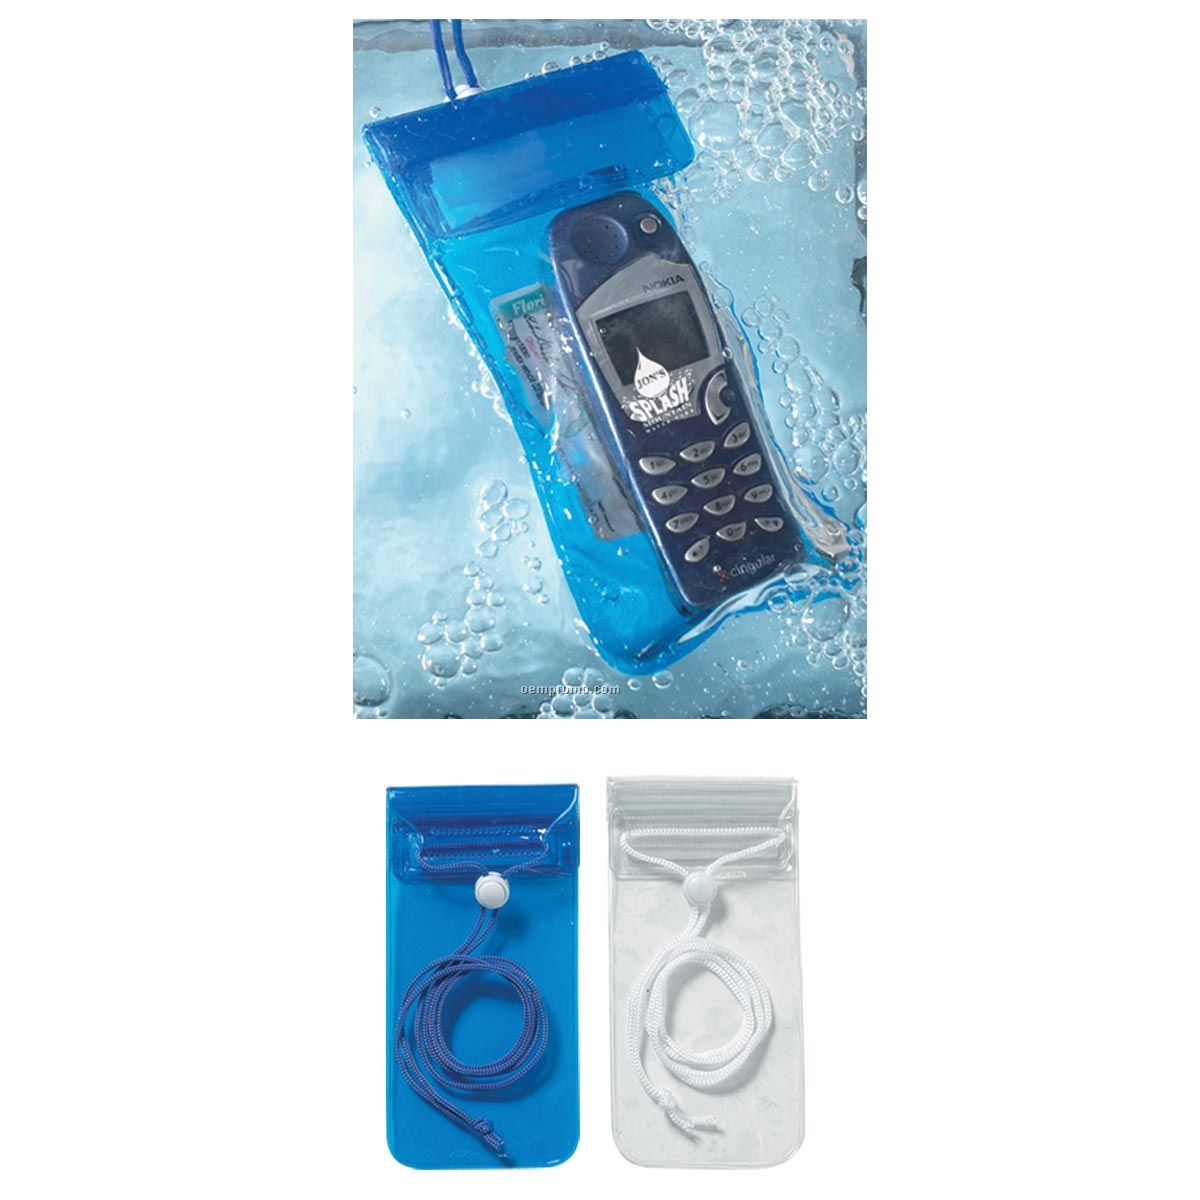 Handy Waterproof Pouch With Neck Cord (Blank)